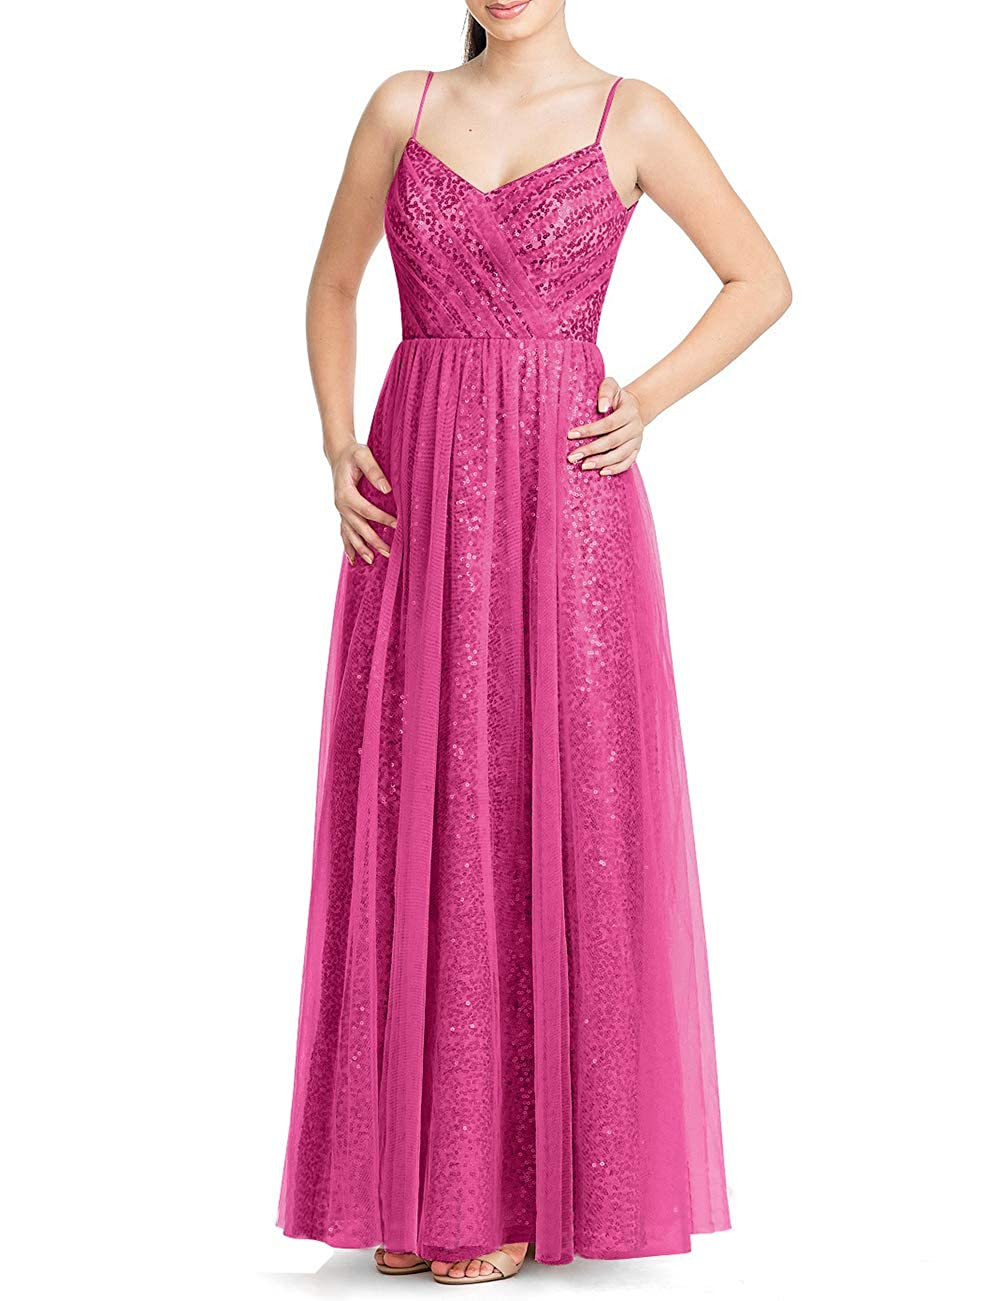 Fuchsia Uther Long Bridesmaid Dresses Sequins Spaghetti Straps Formal Evening Party Prom Gown